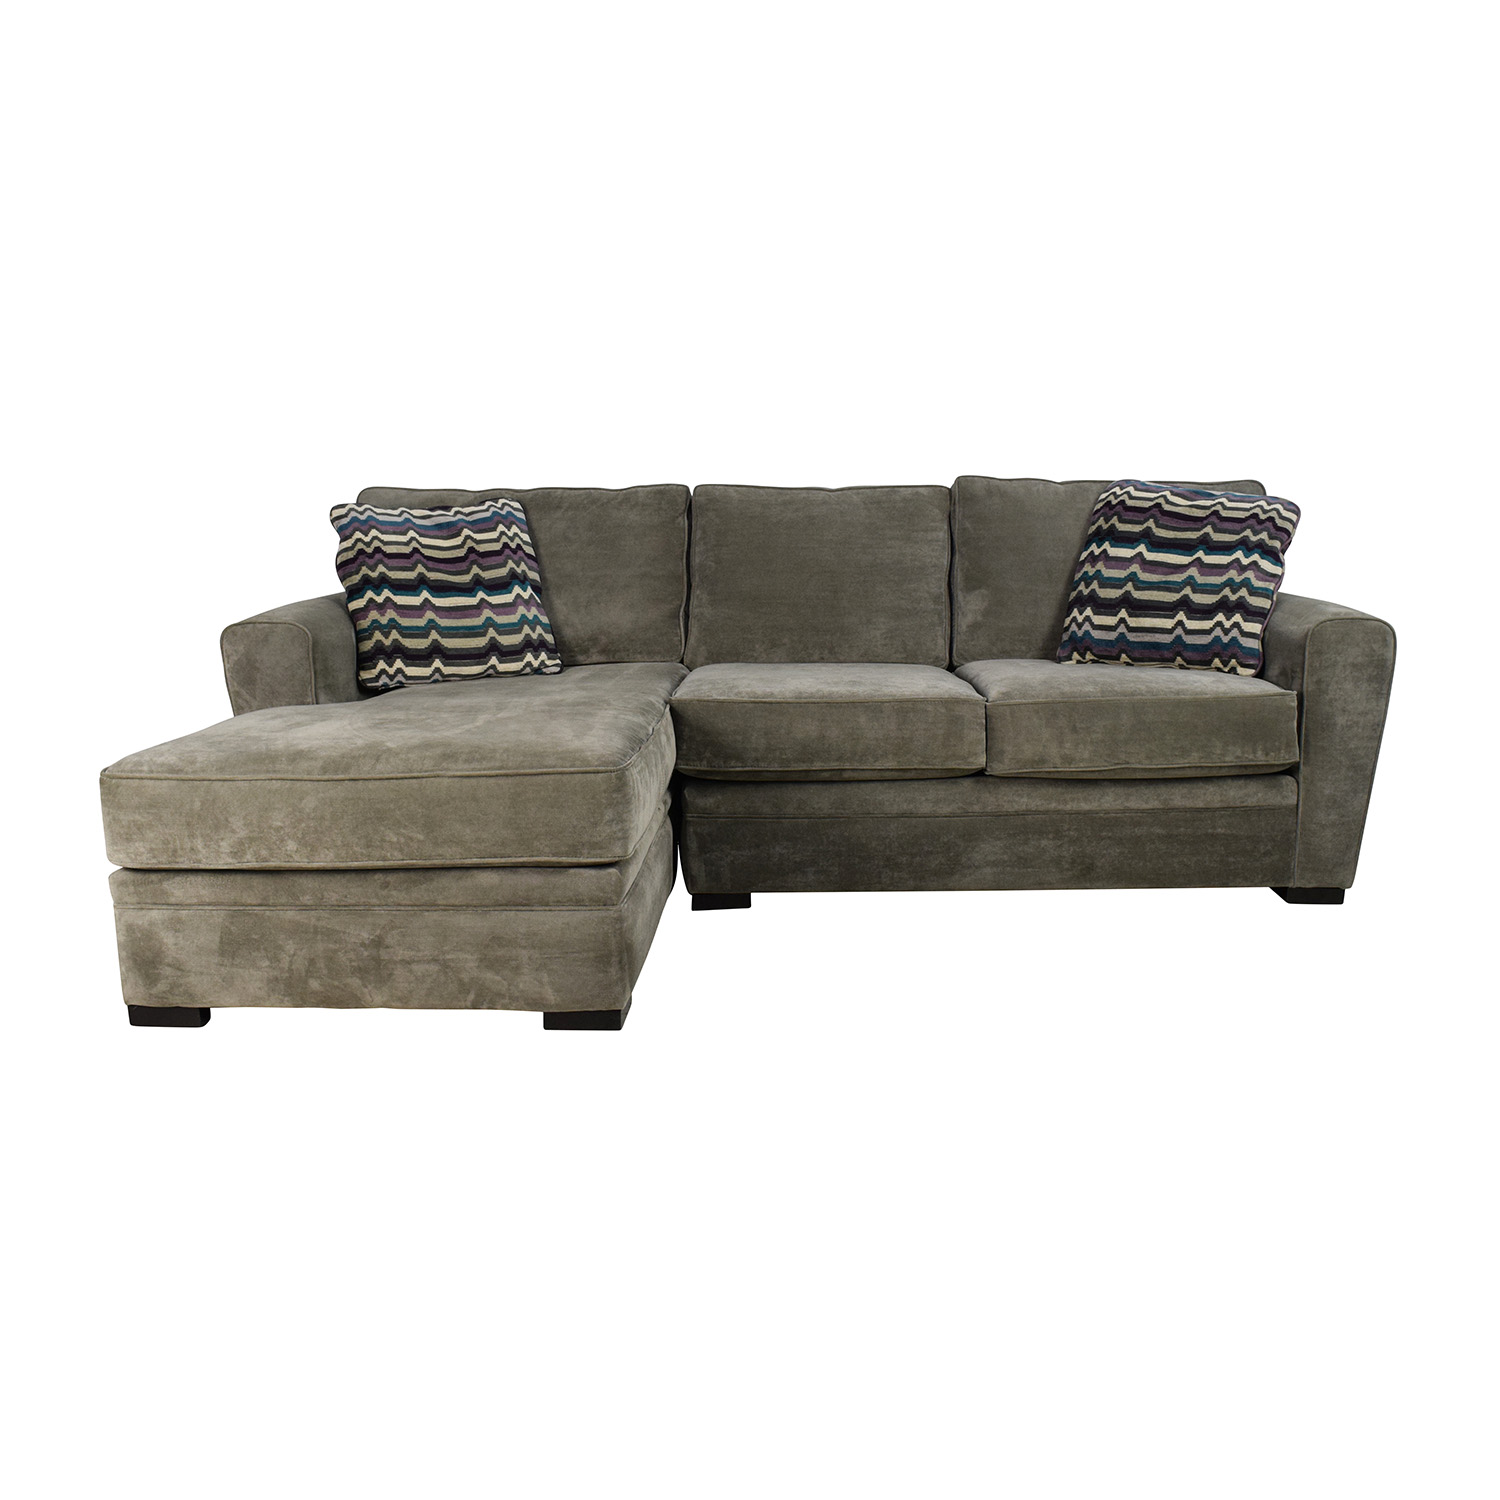 Raymour u0026 Flanigan Artemis II Microfiber Sectional Sofa / Sectionals  sc 1 st  Furnishare : raymour flanigan sectional - Sectionals, Sofas & Couches